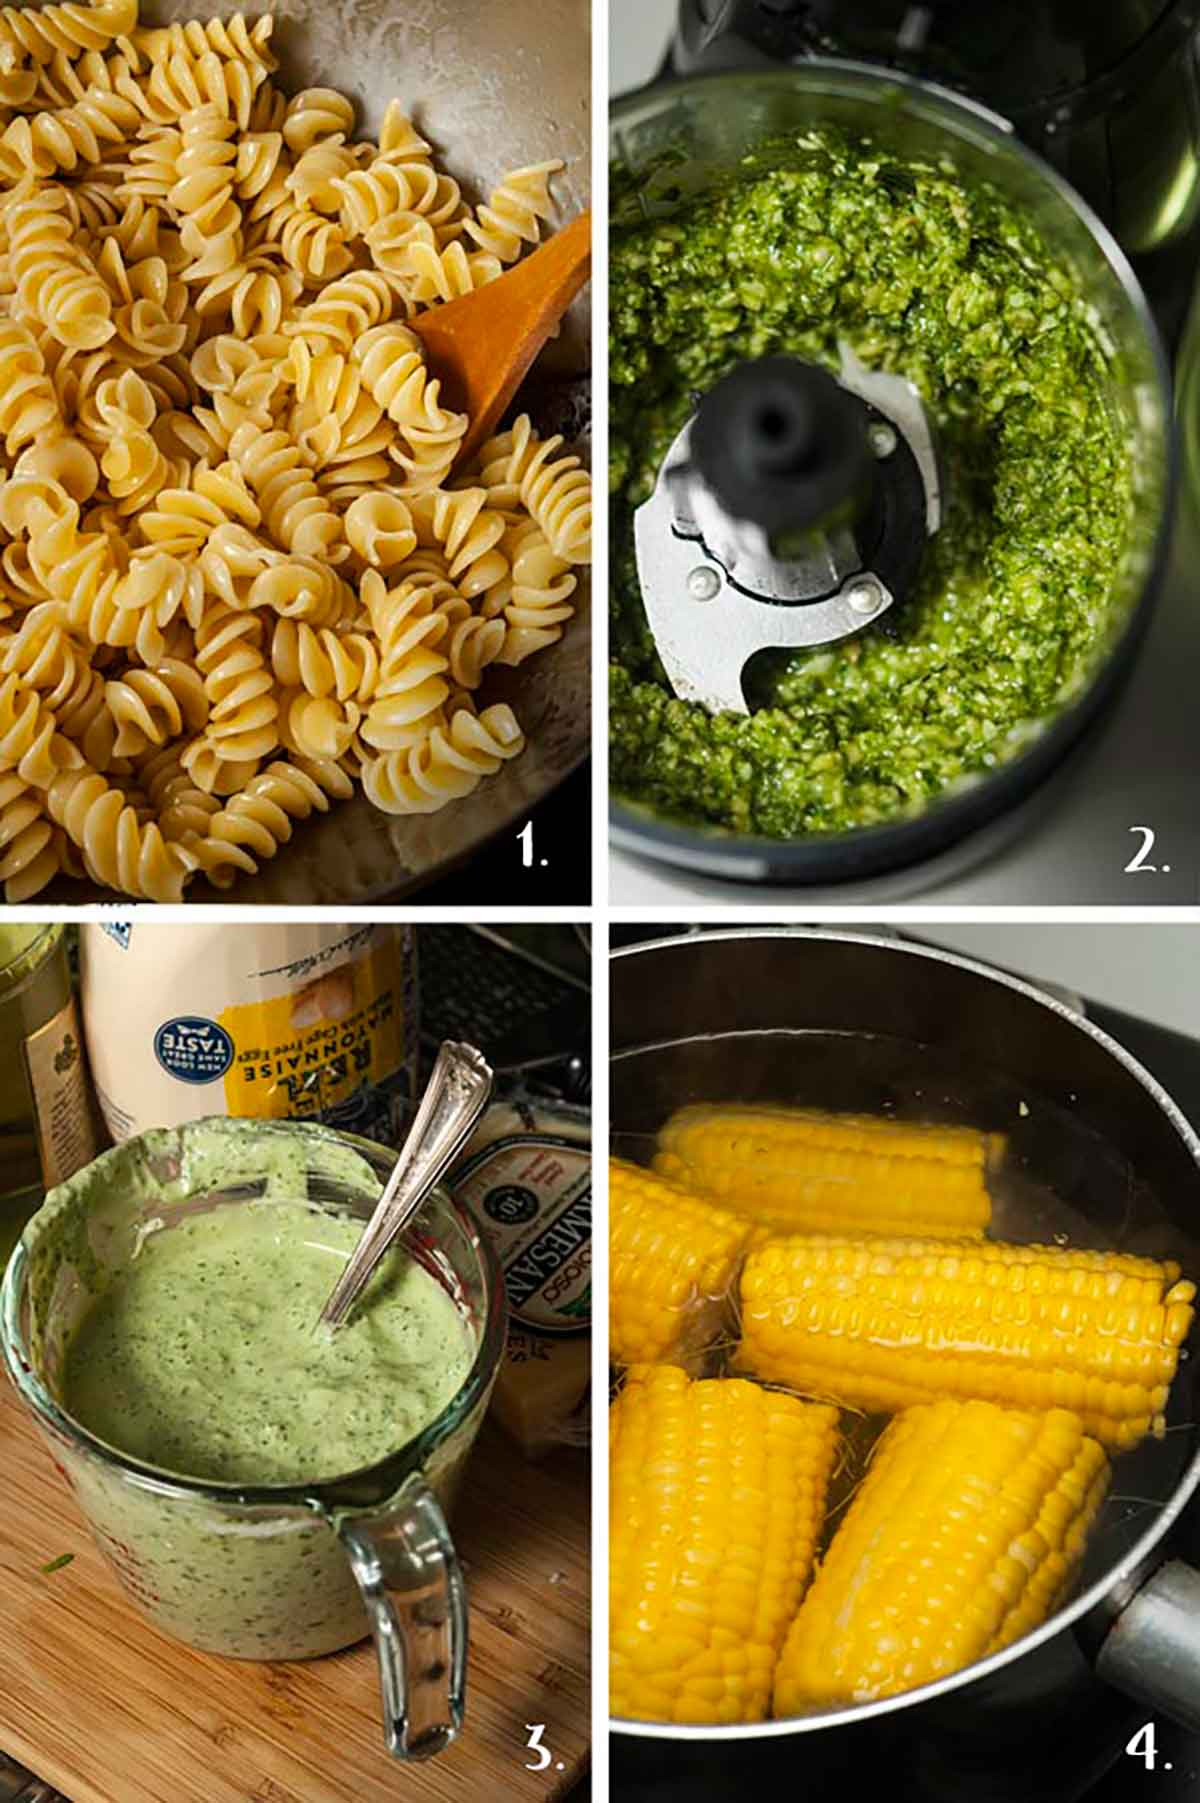 A collage of 4 numbered images showing how to boil pasta, make pesto and boil corn.